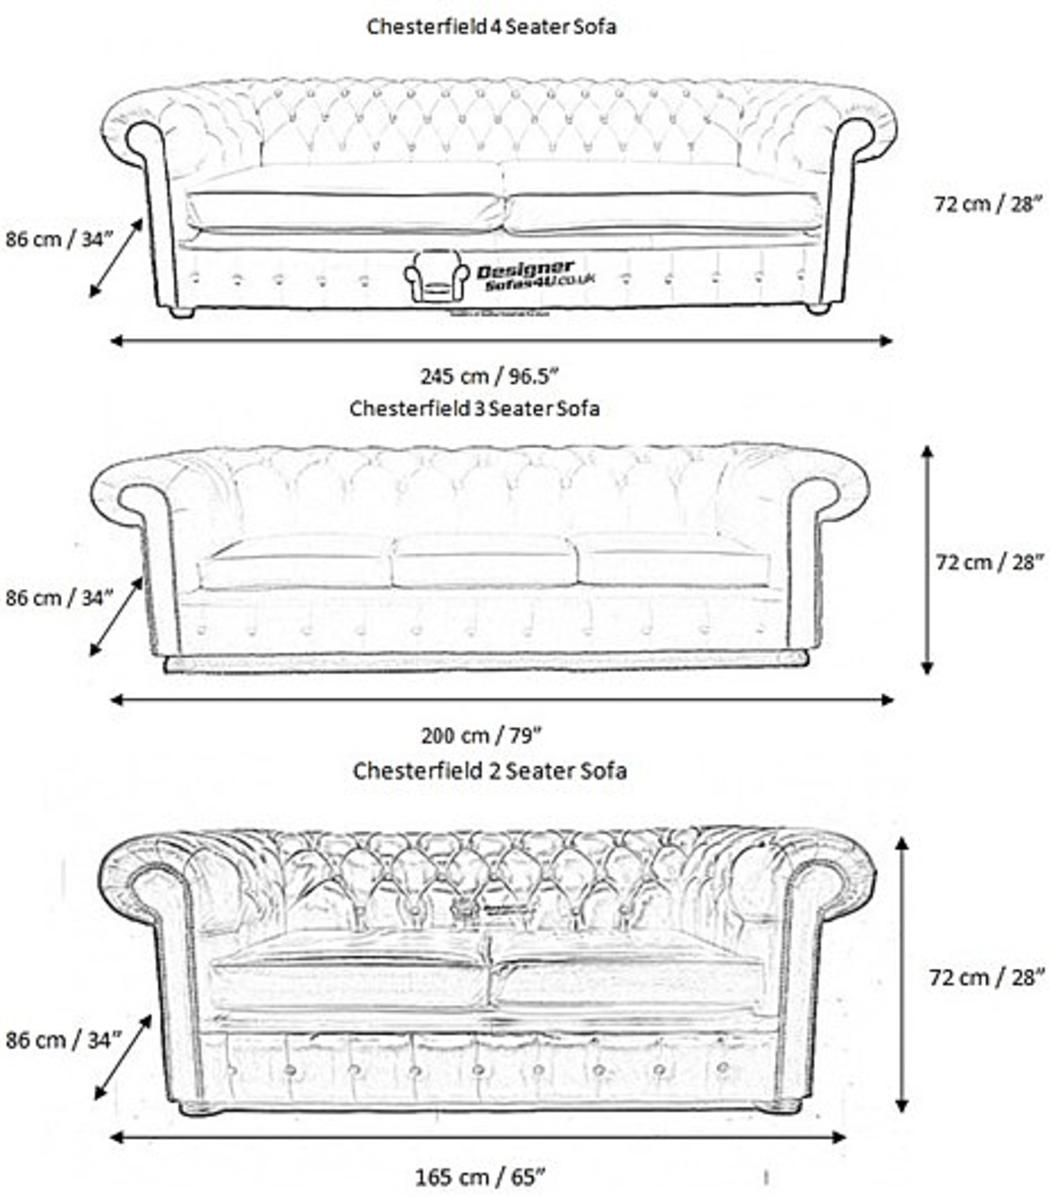 Measurements of Chesterfield Furniture | Chesterfield ...